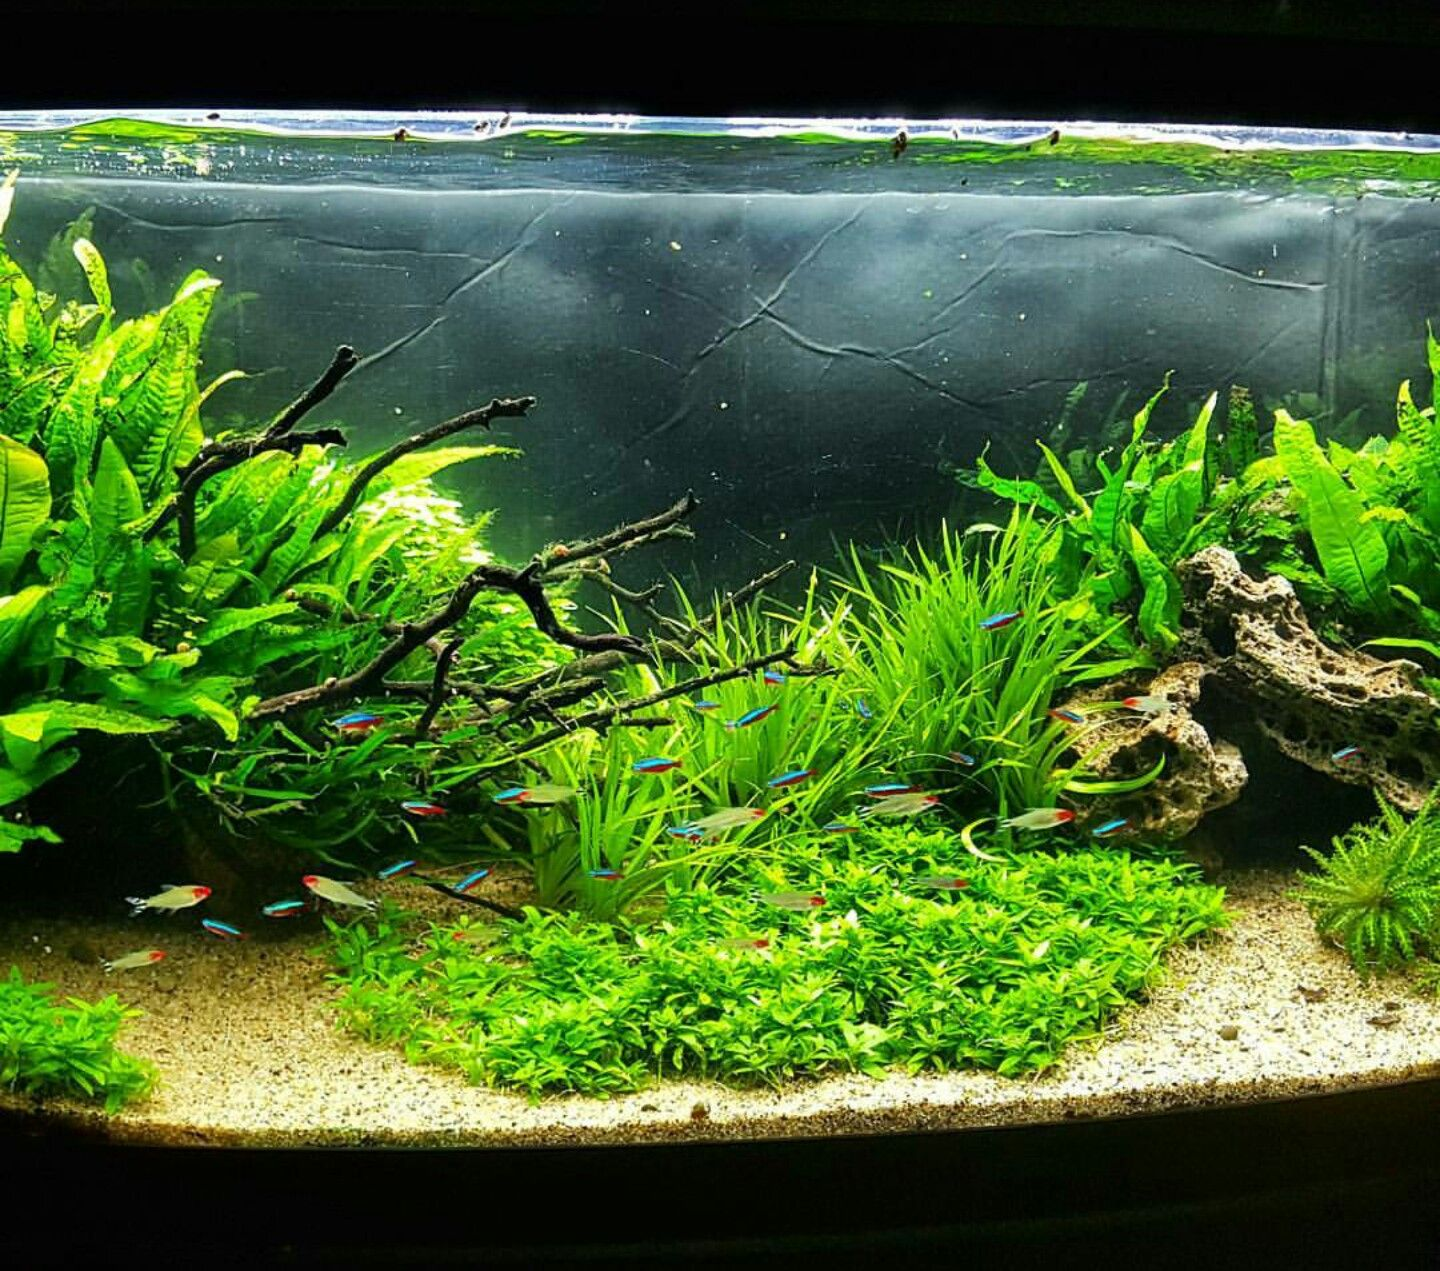 Aquascape With Cardinal Tetras And Rummynose Tetras By Diy Aqua Pros Aquascape Aquarium Aquascape Planted Aquarium